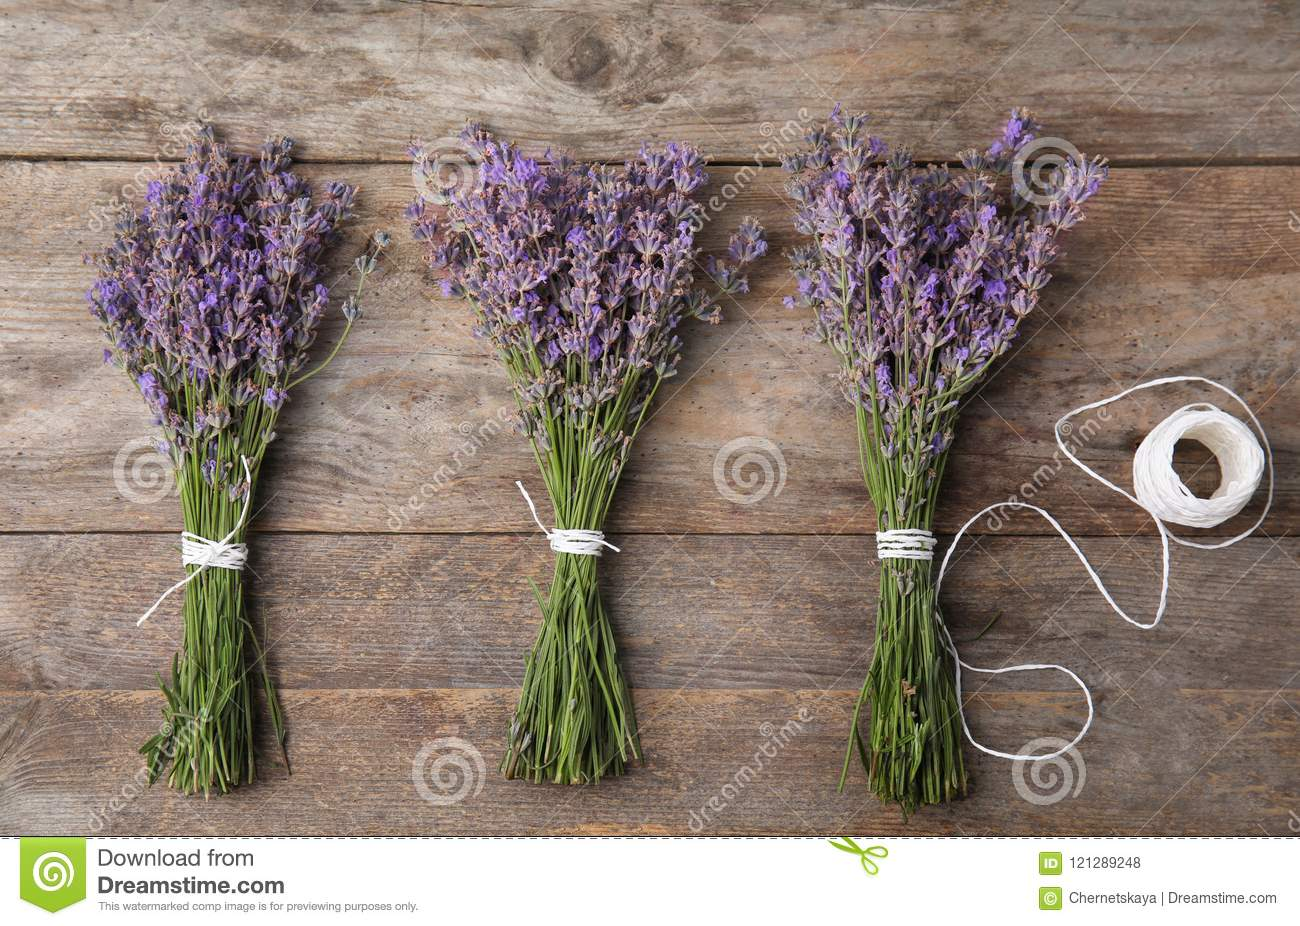 Flat lay composition with lavender flowers